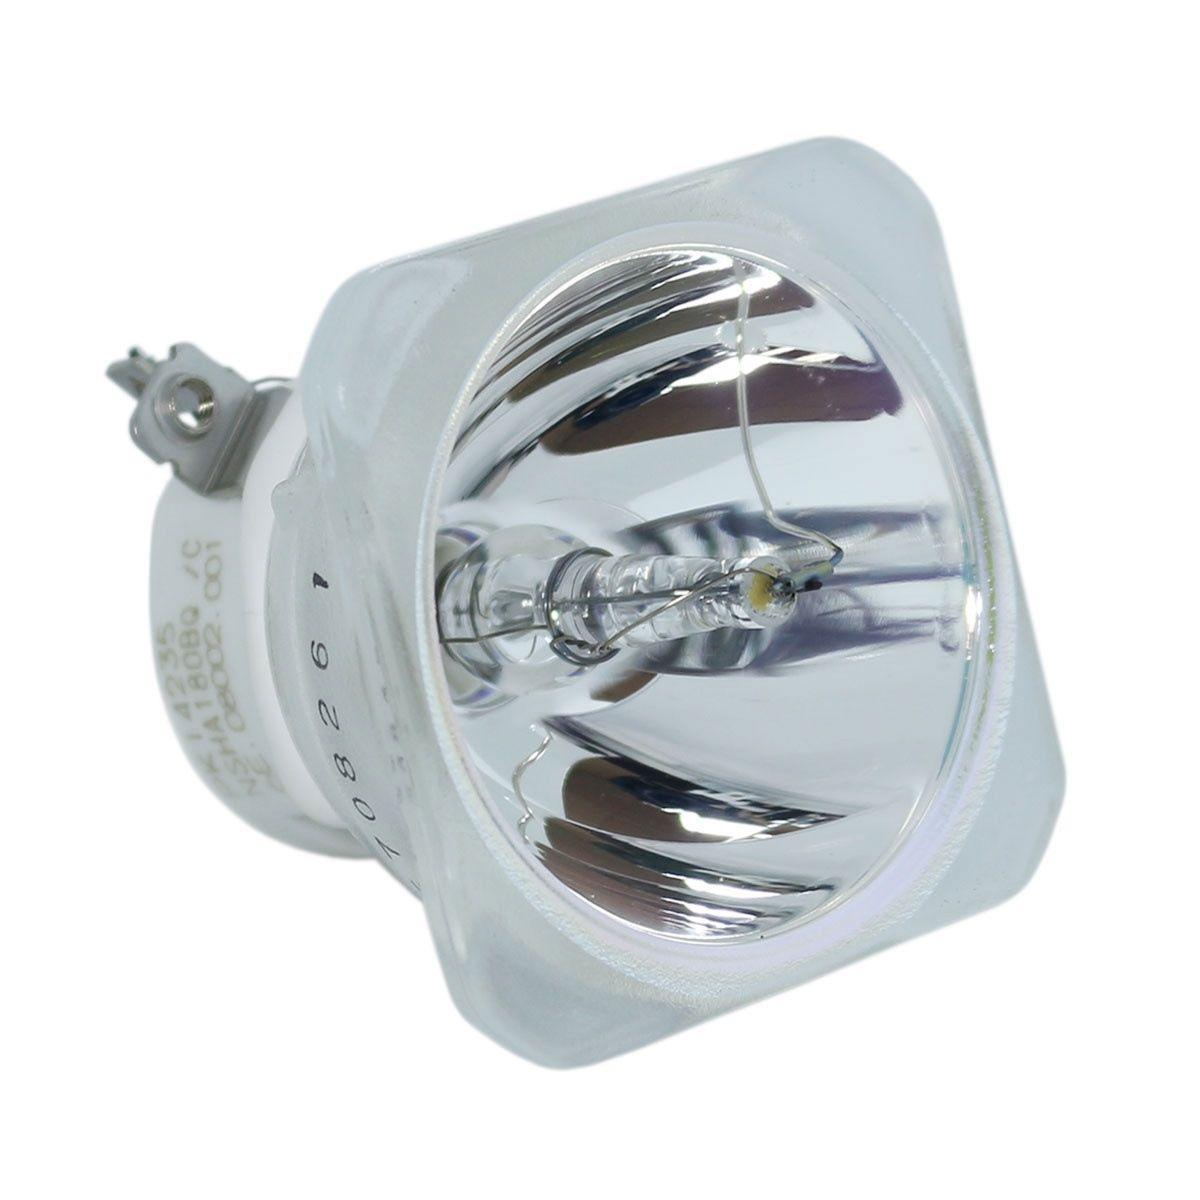 Compatible Bare Bulb 5J.08001.001 for BenQ MP511 Projector Lamp Bulb without housing replacement compatible bare bulb 5j 08g01 001 lamp for benq mp730 projector